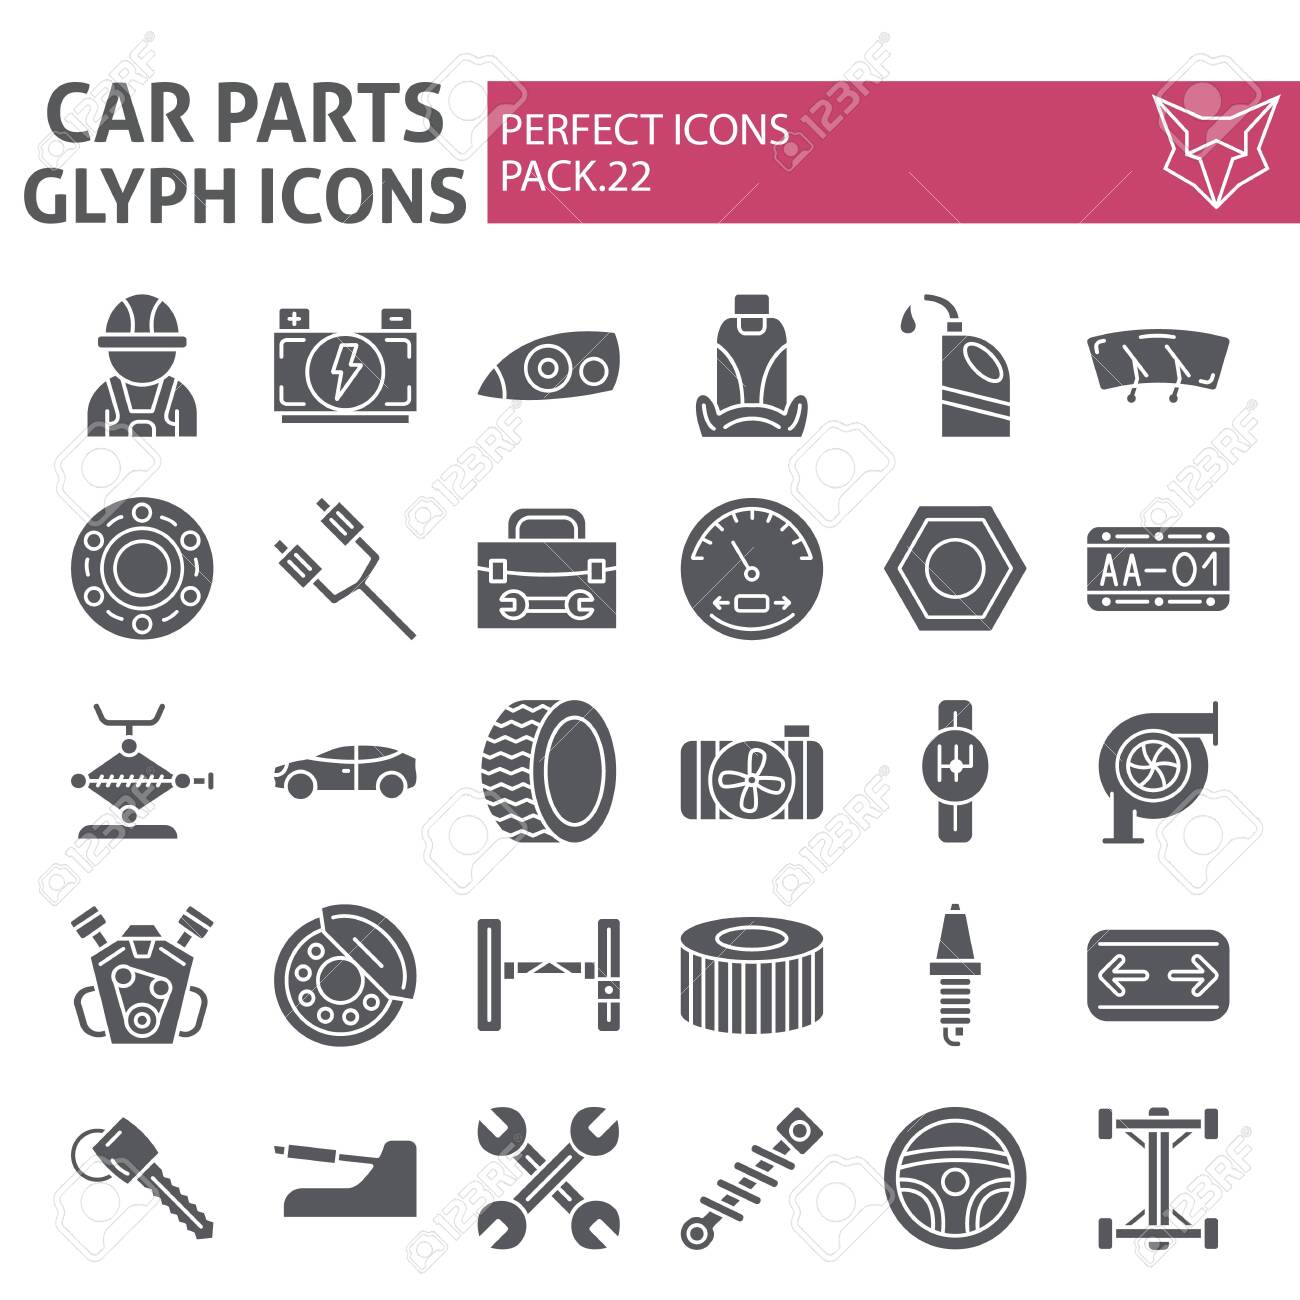 Car parts glyph icon set, automobile symbols collection, vector sketches, logo illustrations, auto repair signs solid pictograms package isolated on white background. - 121210479